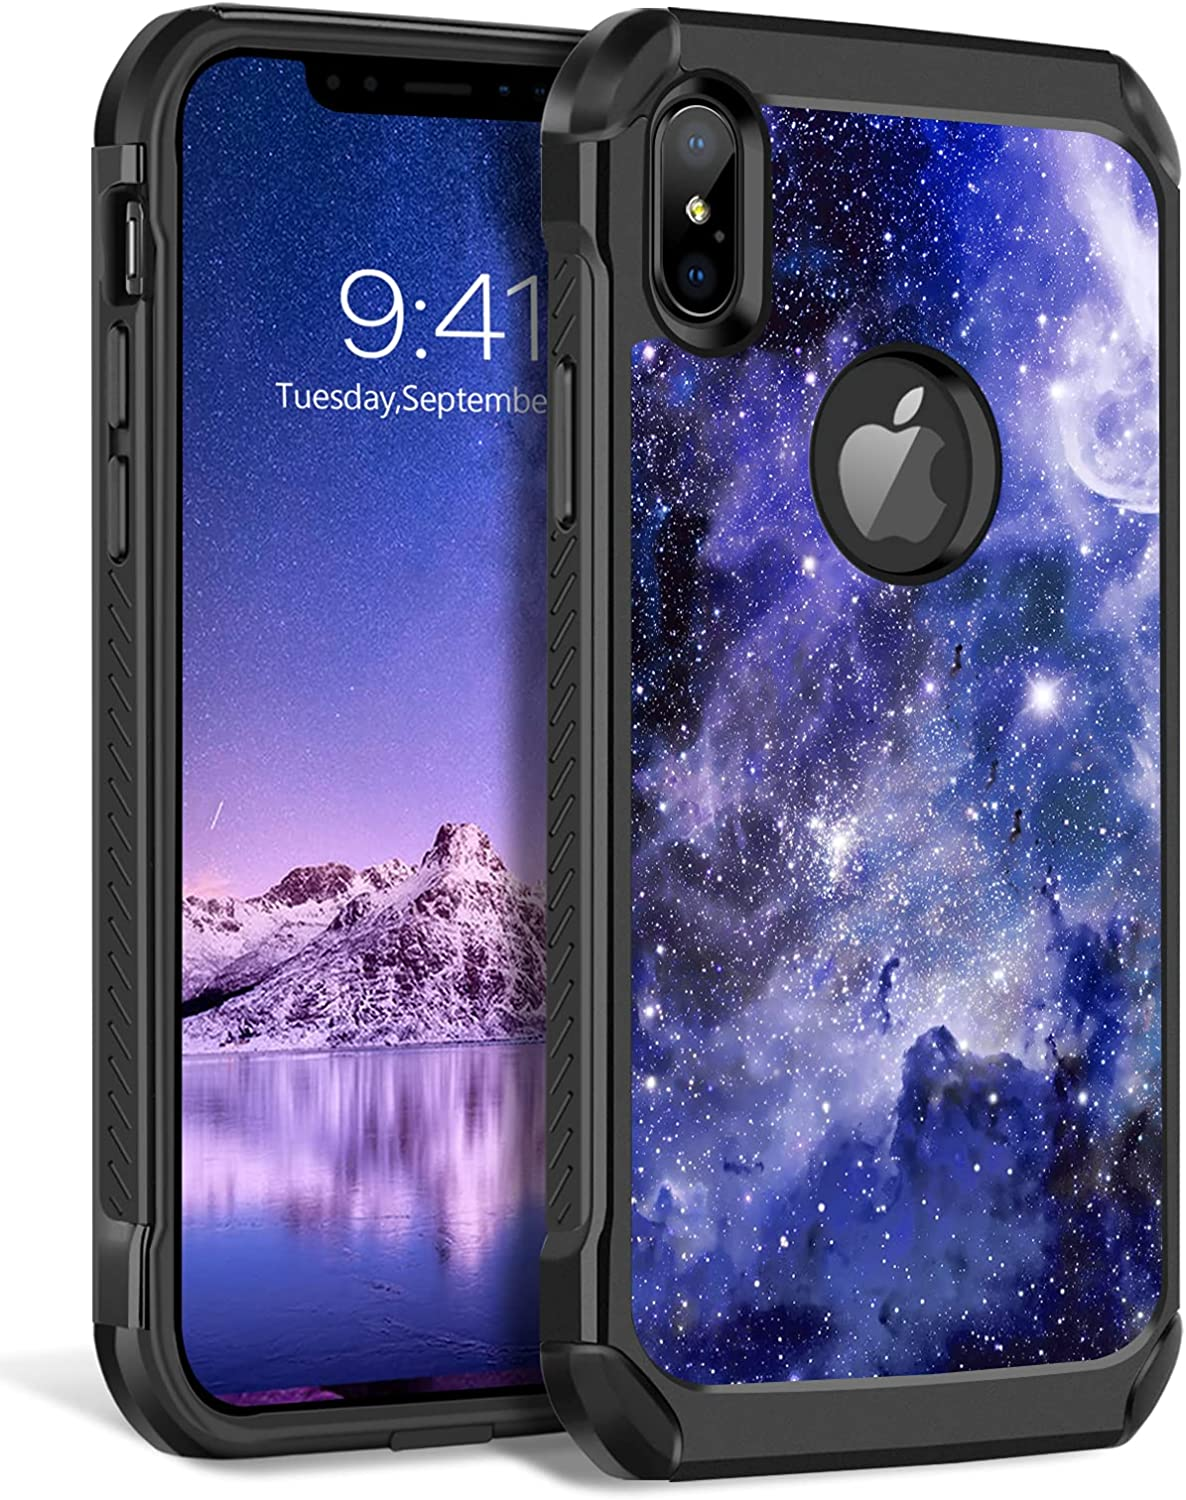 BENTOBEN iPhone Xs Max Case, Shockproof Glow in The Dark Slim 2 in 1 Hybrid Hard PC Soft Bumper Nebula Space Design Anti-Scratch Protective Phone Cases Cover for iPhone Xs Max 6.5